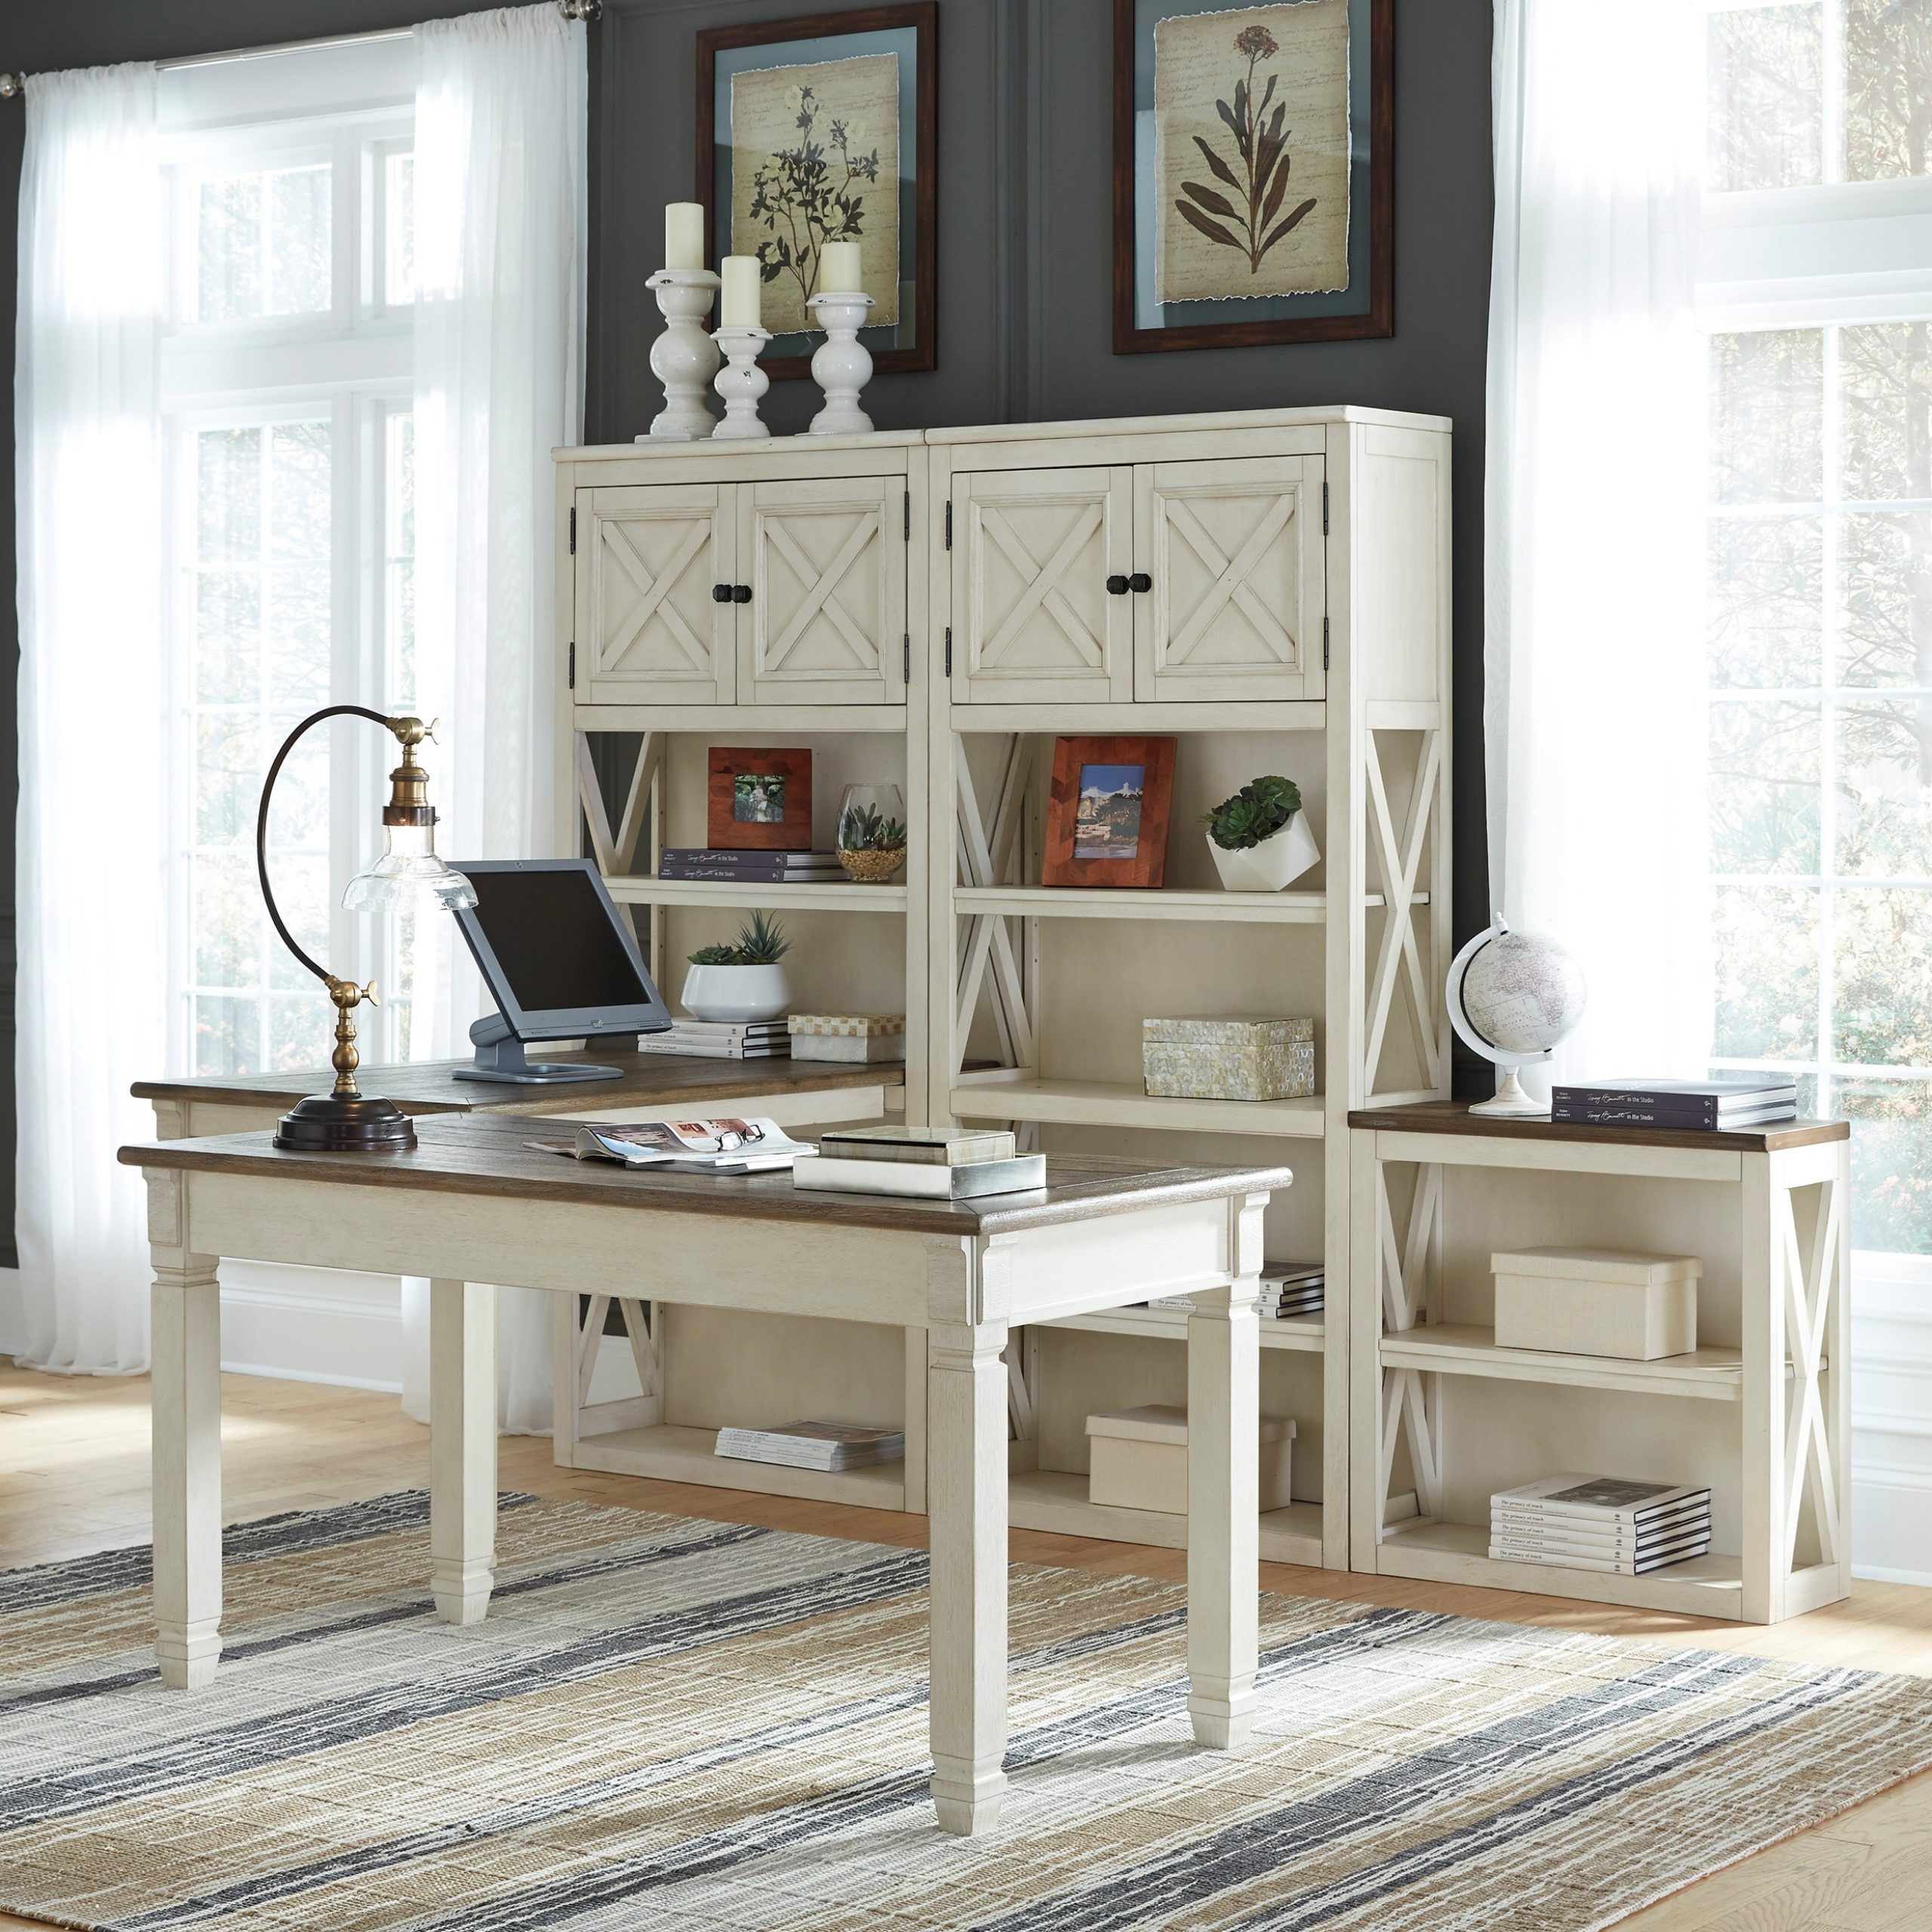 Home Office Furniture From Crowley Furniture & Mattress Within Office Sofas And Chairs (View 14 of 15)